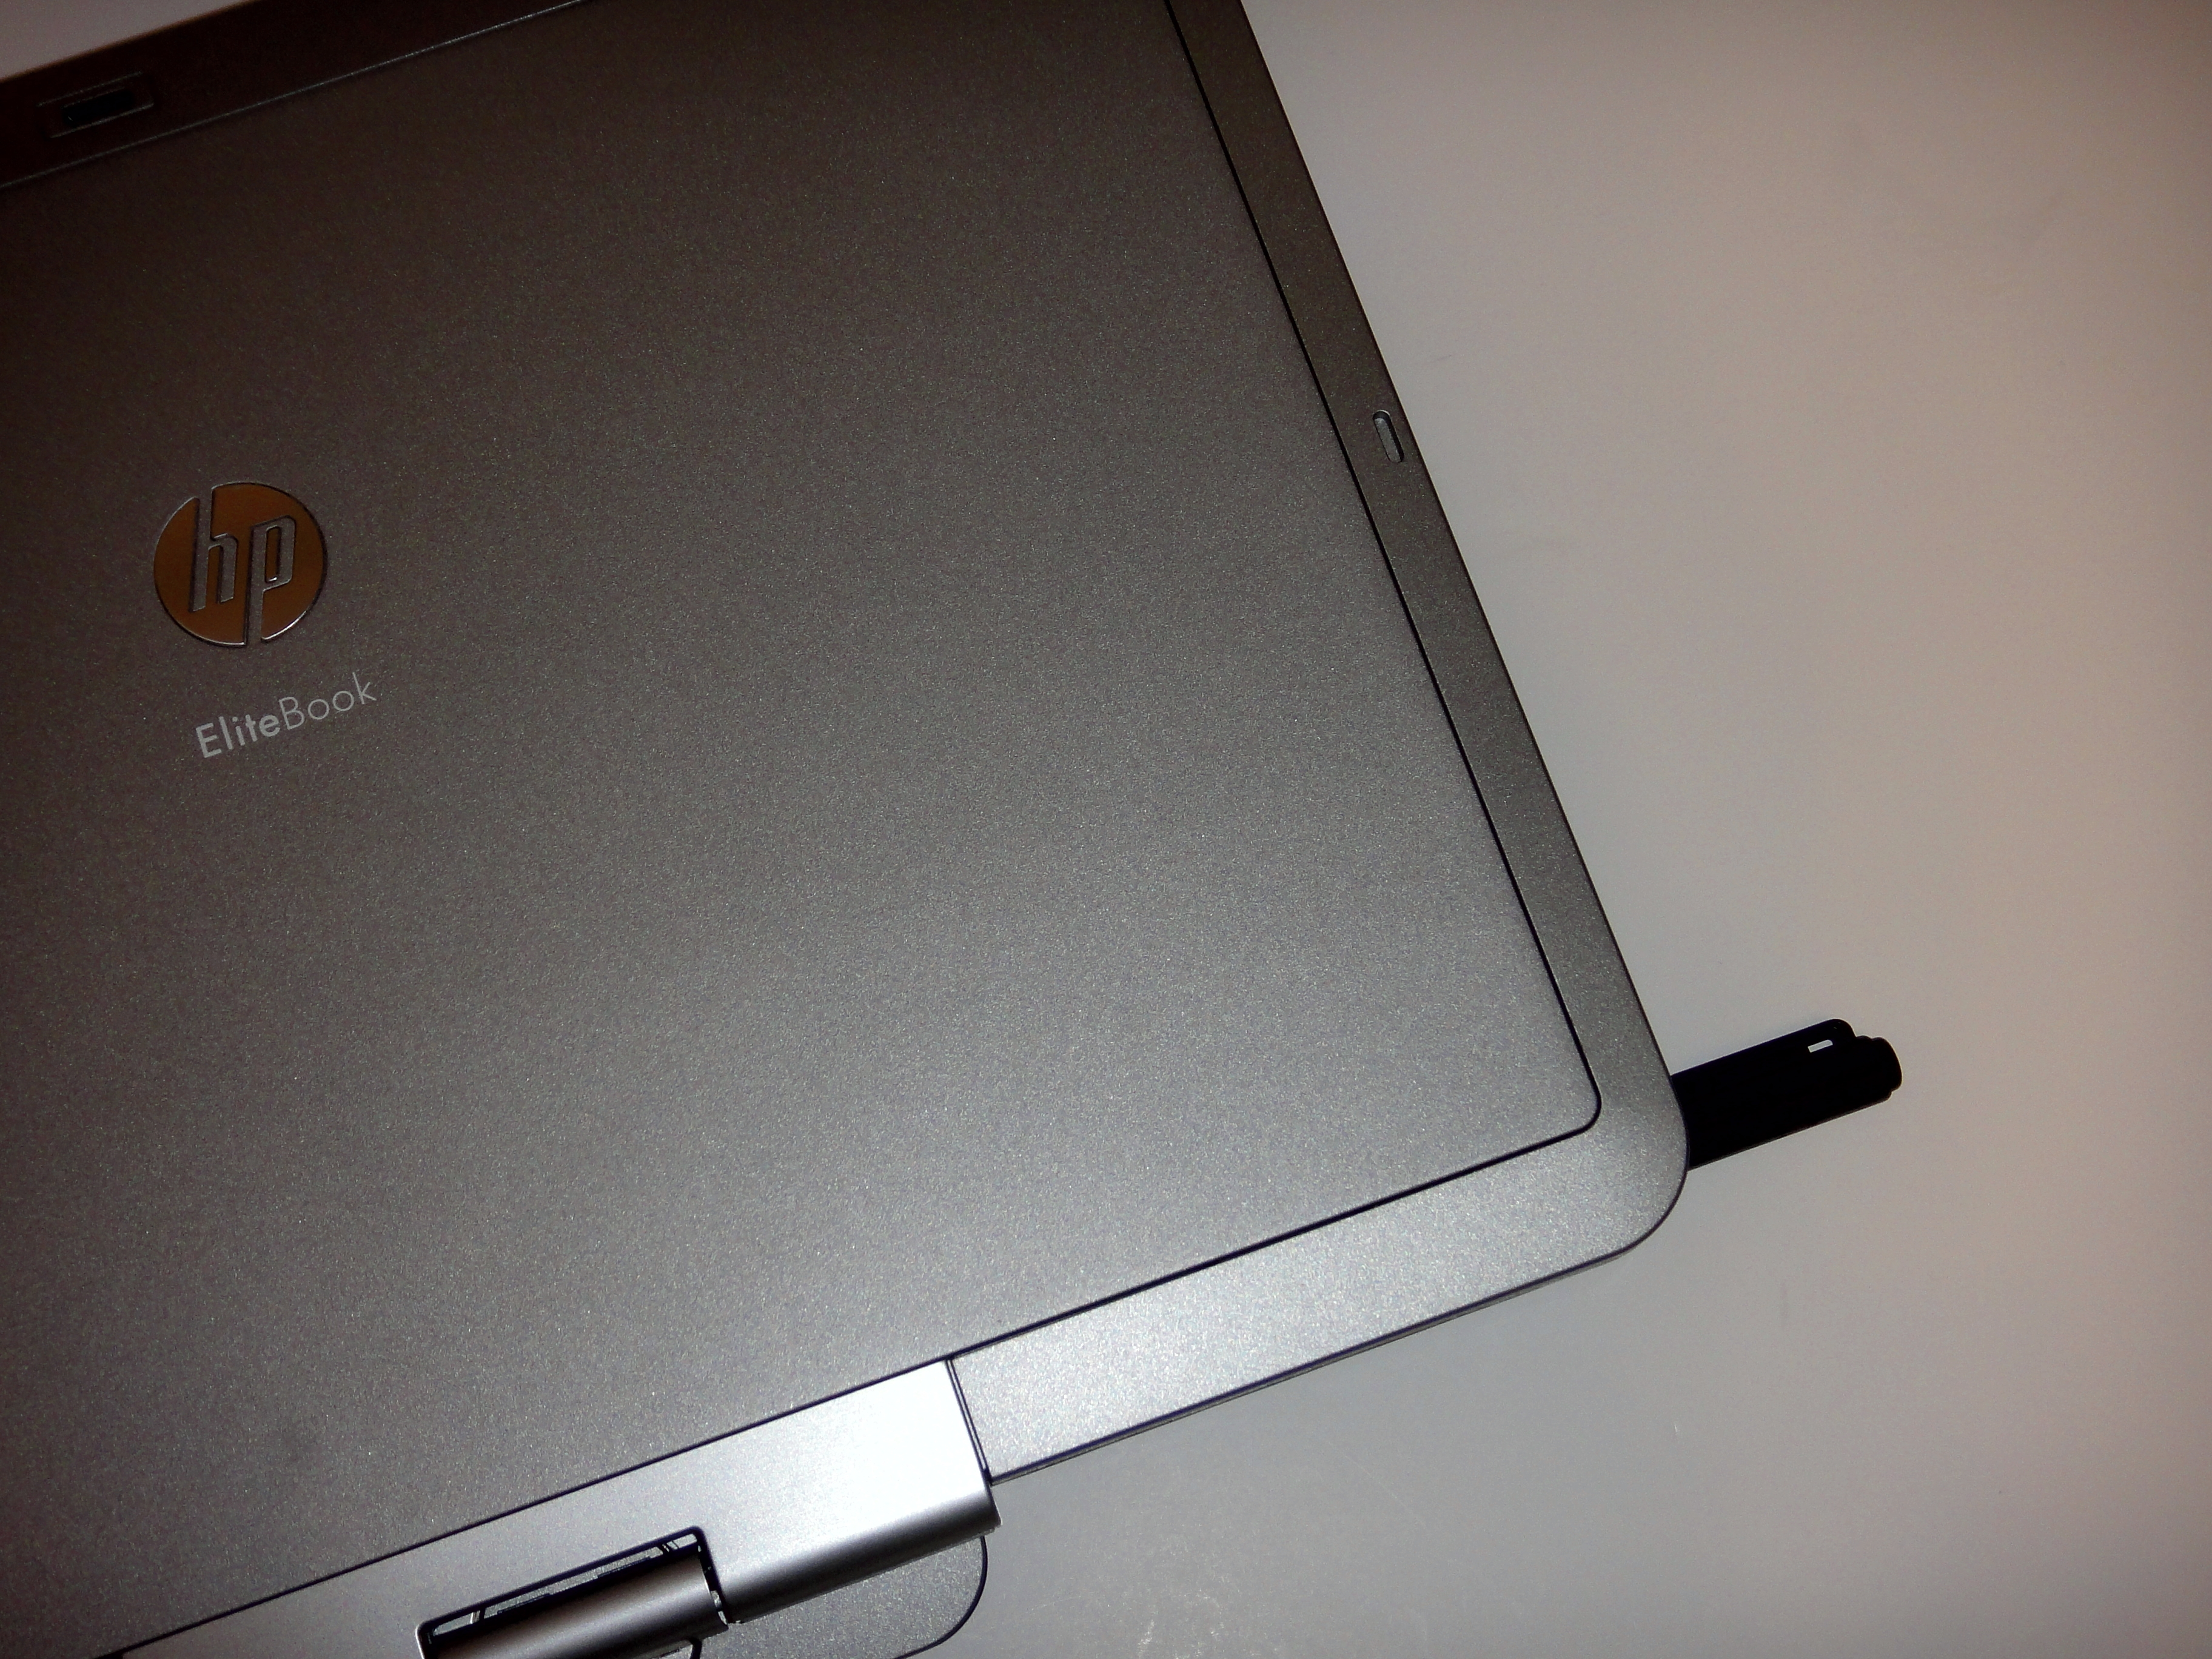 Elitebook 2740p top with Stylus